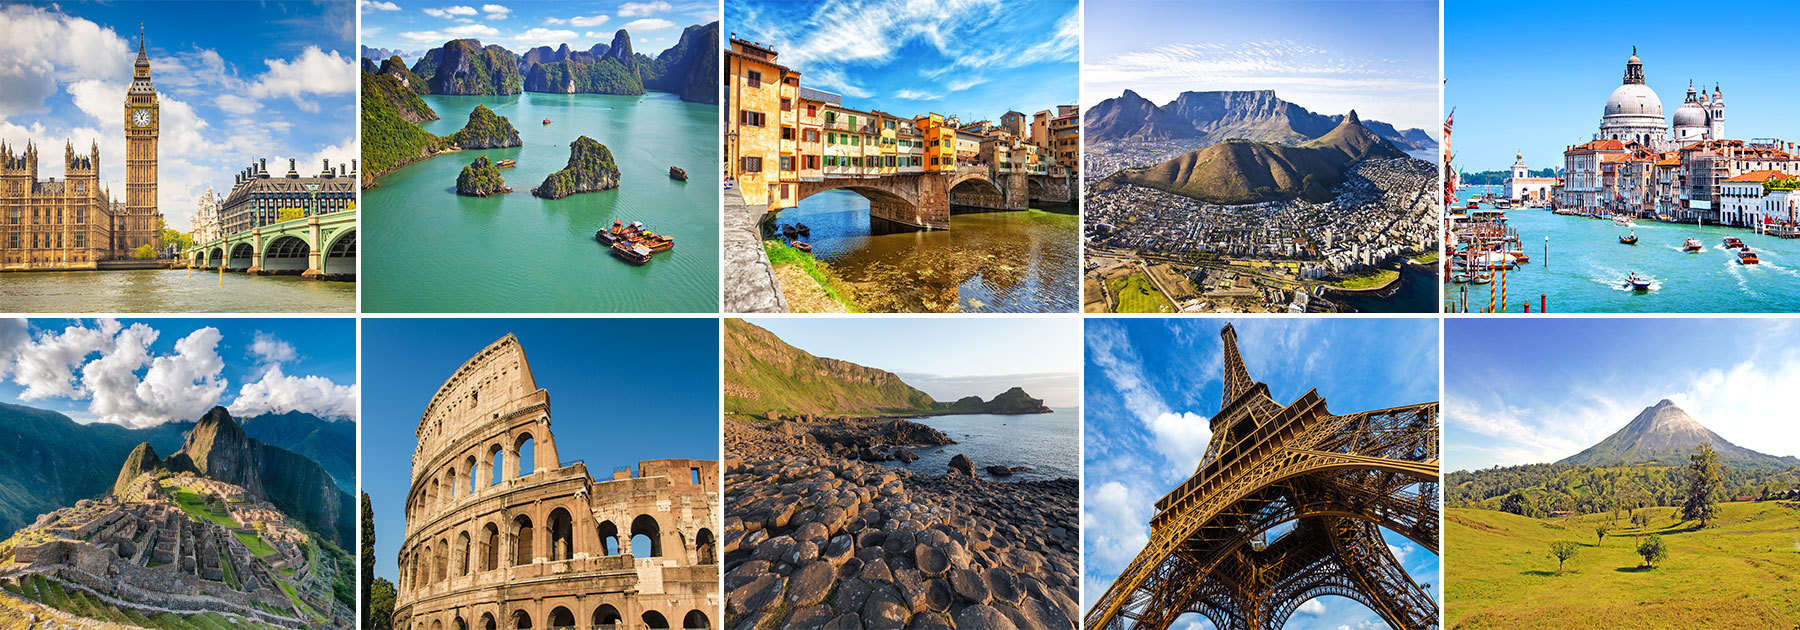 Tour Packages From India To Abroad